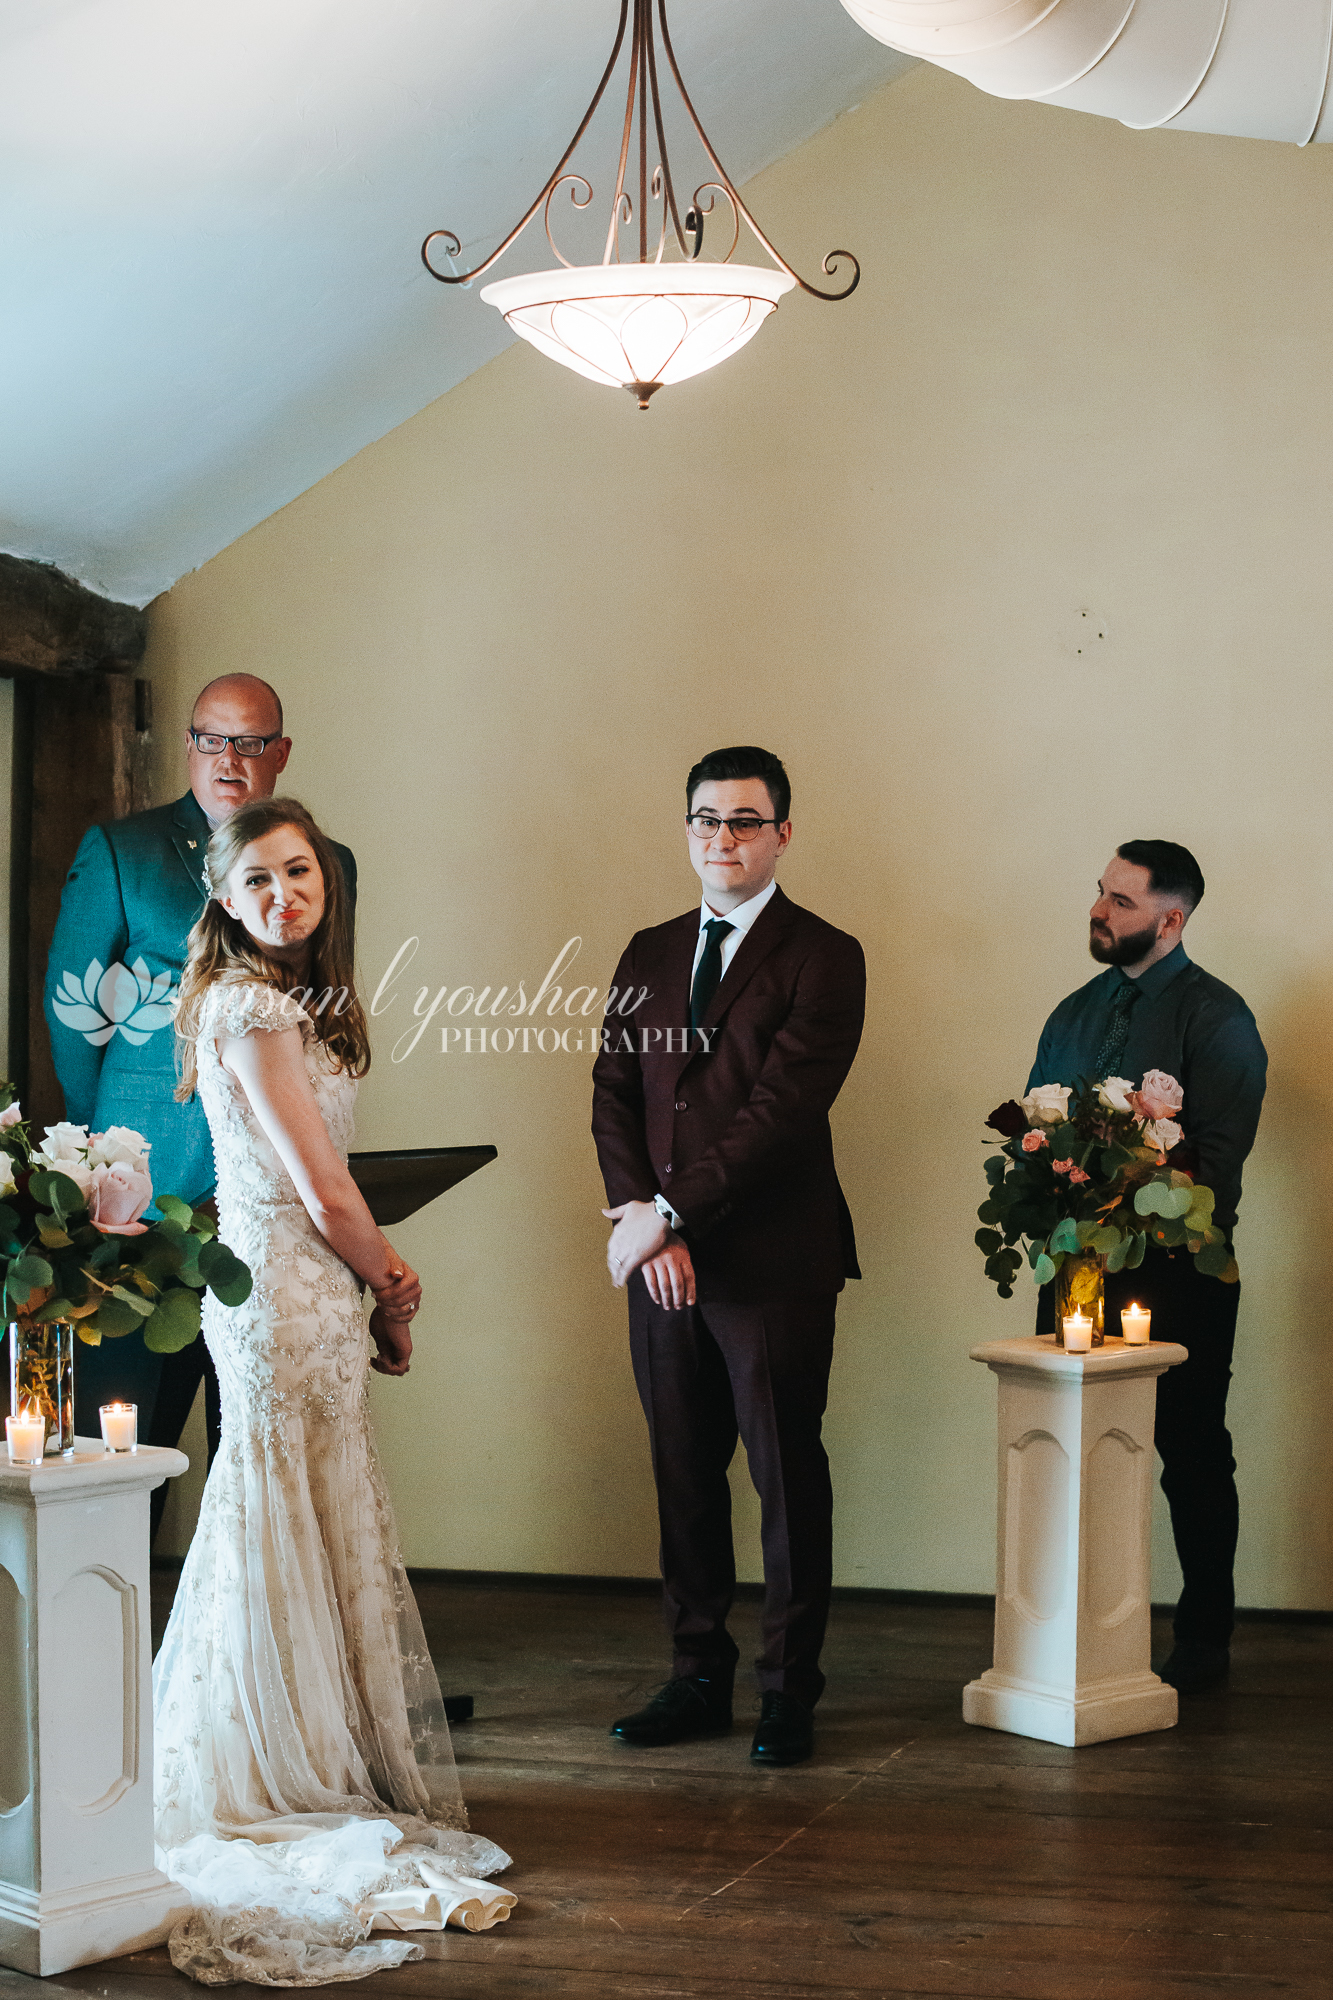 Chynna and John Wedding 05-18-2019 SLY Photography-100.jpg